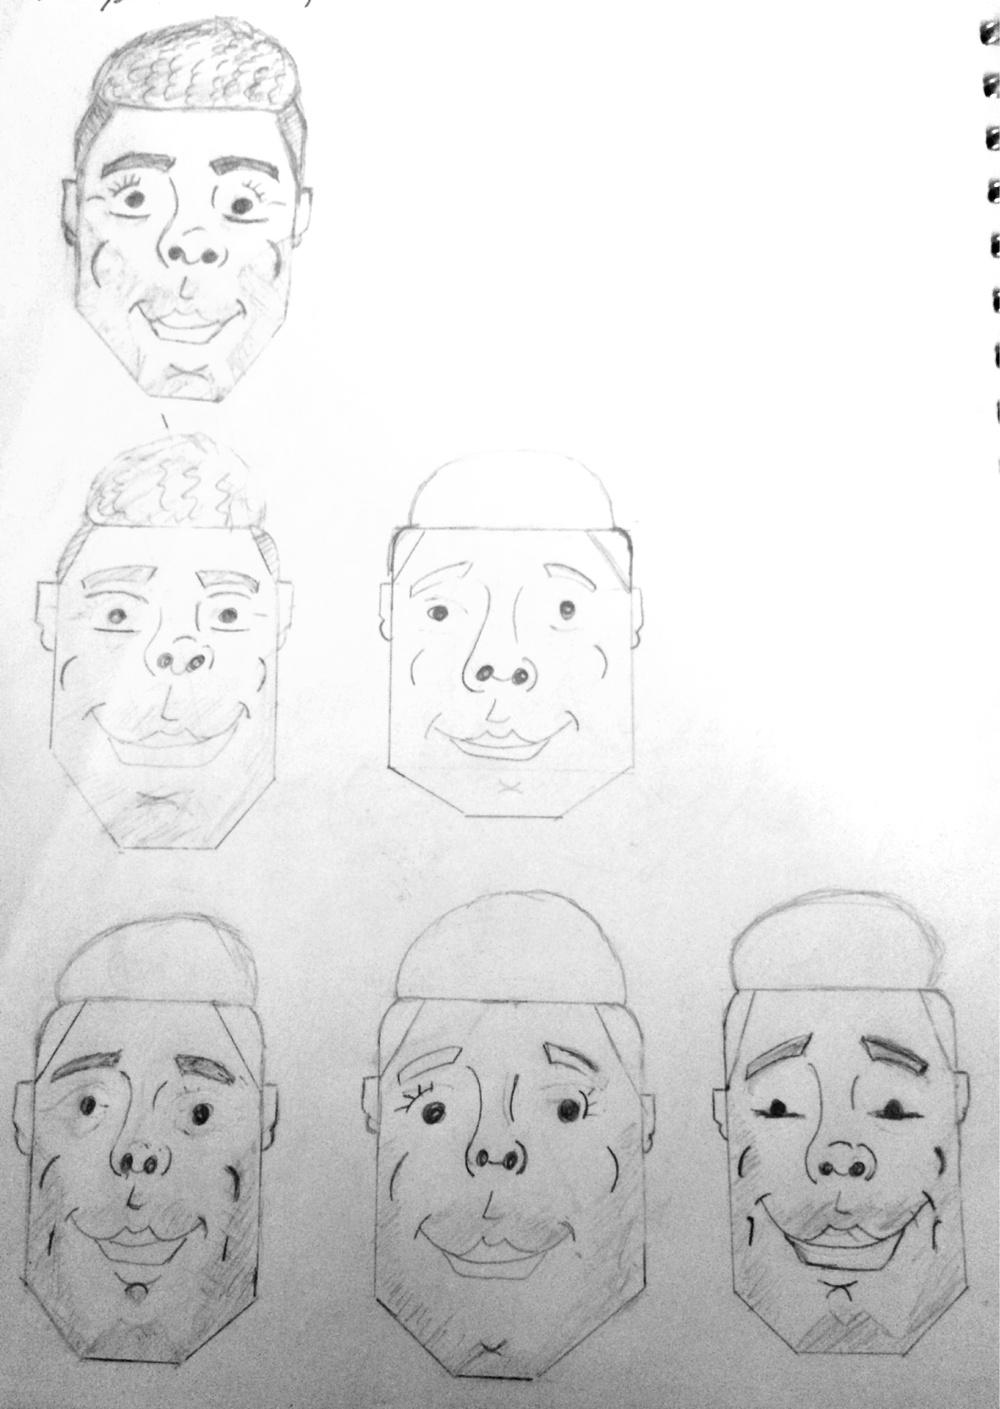 I started sketching a variety of would-be avatars, each considering variations on the rules I stuck with and considering areas of enhancement.